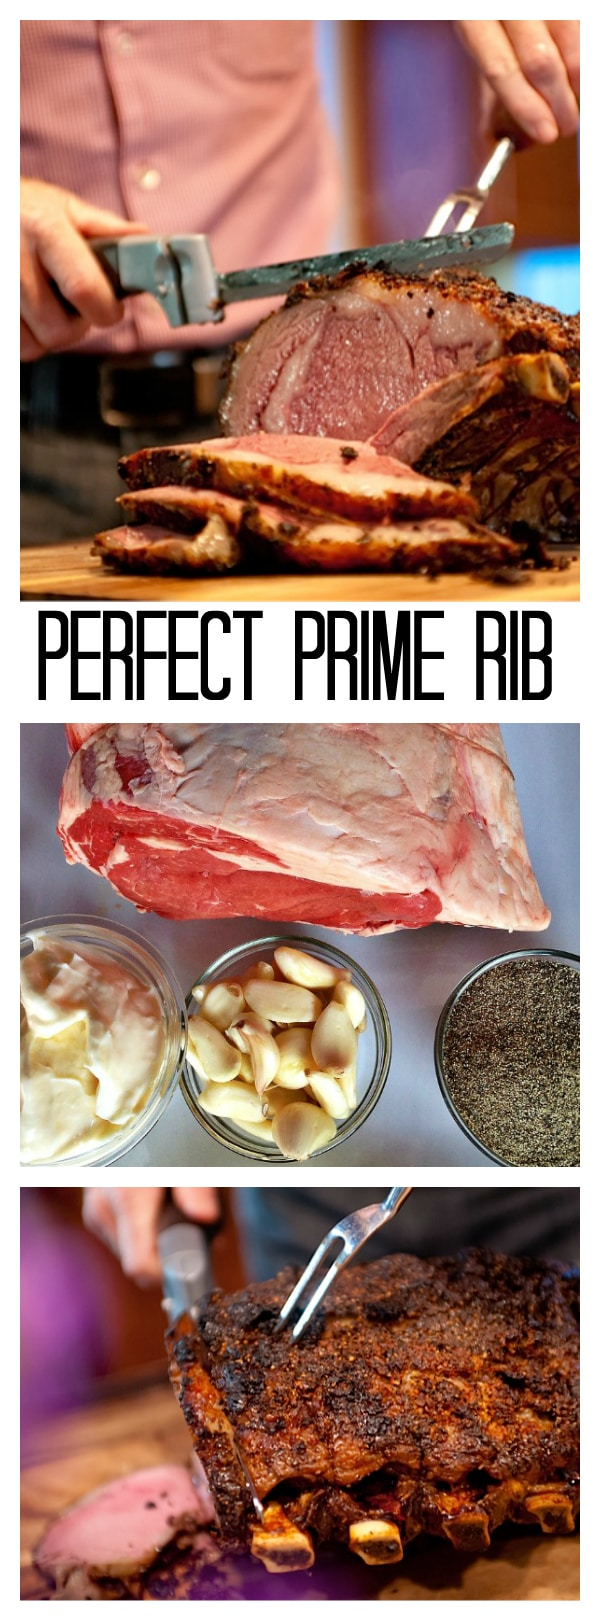 Crusted Pepper Prime Rib Recipe